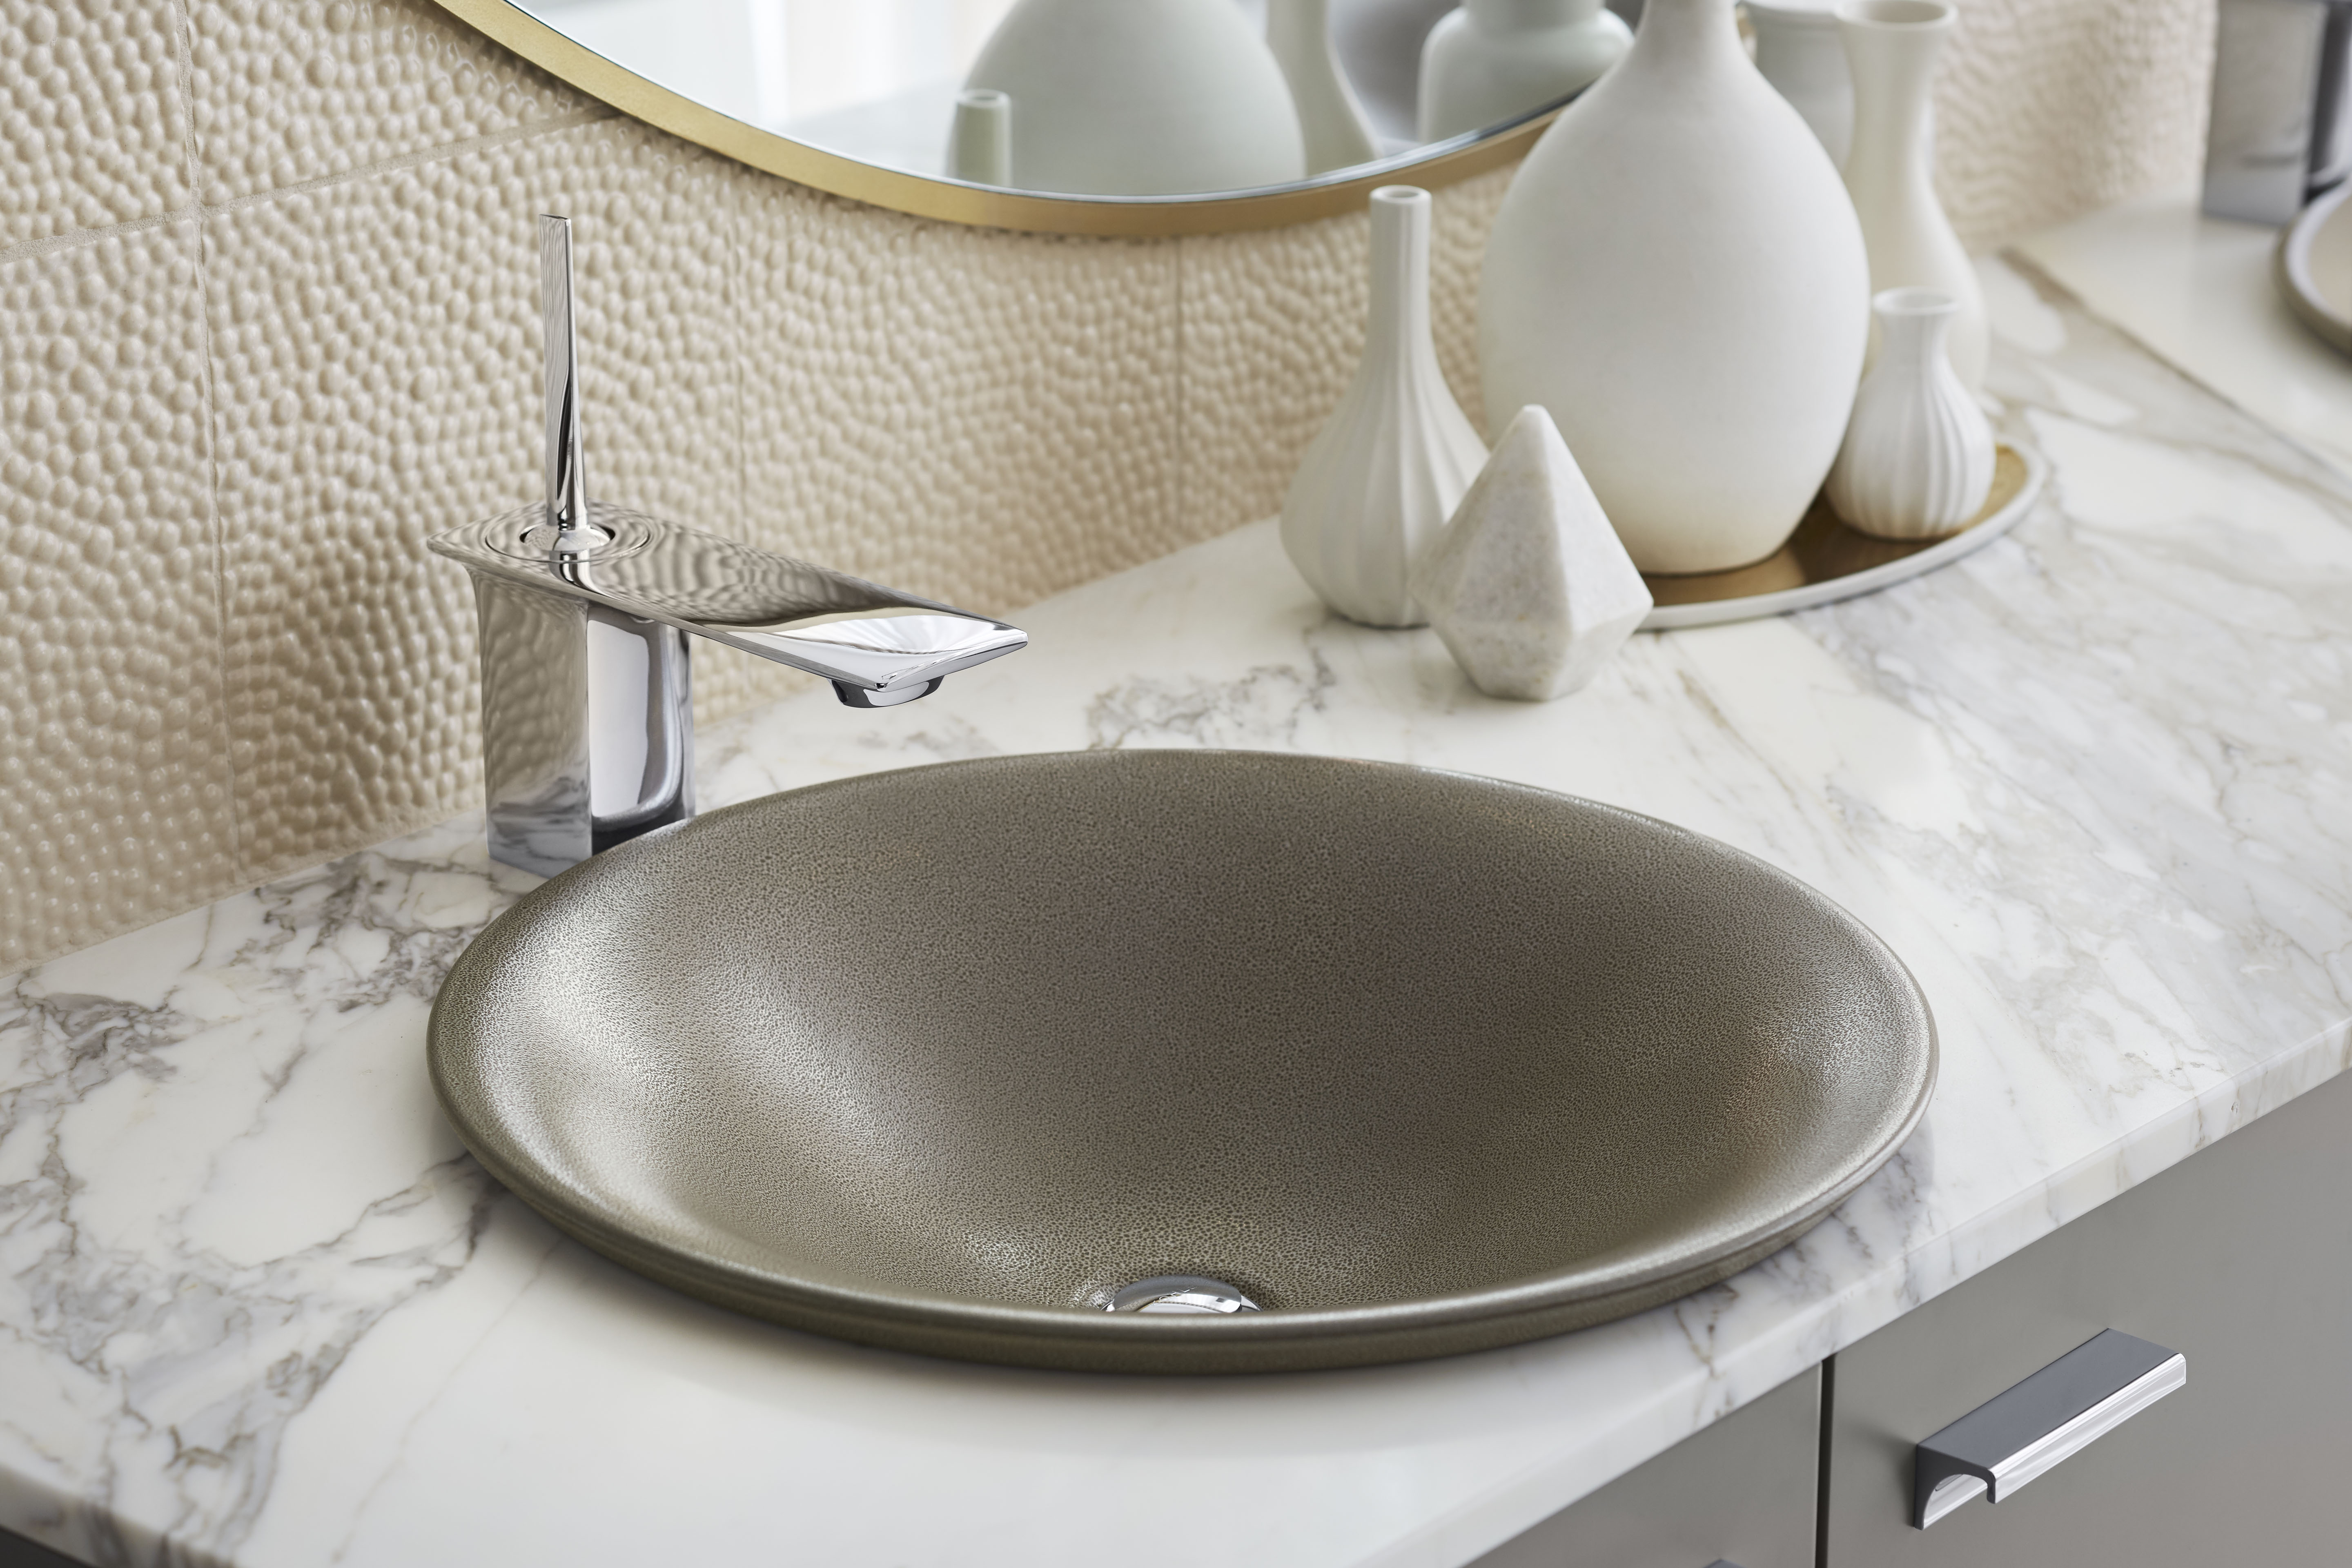 Shagreen Carillon sink     Stance Faucet     Blend warm and cool tones when mixing metals. The subtle gold finish on this mirror balances with the chrome faucet.